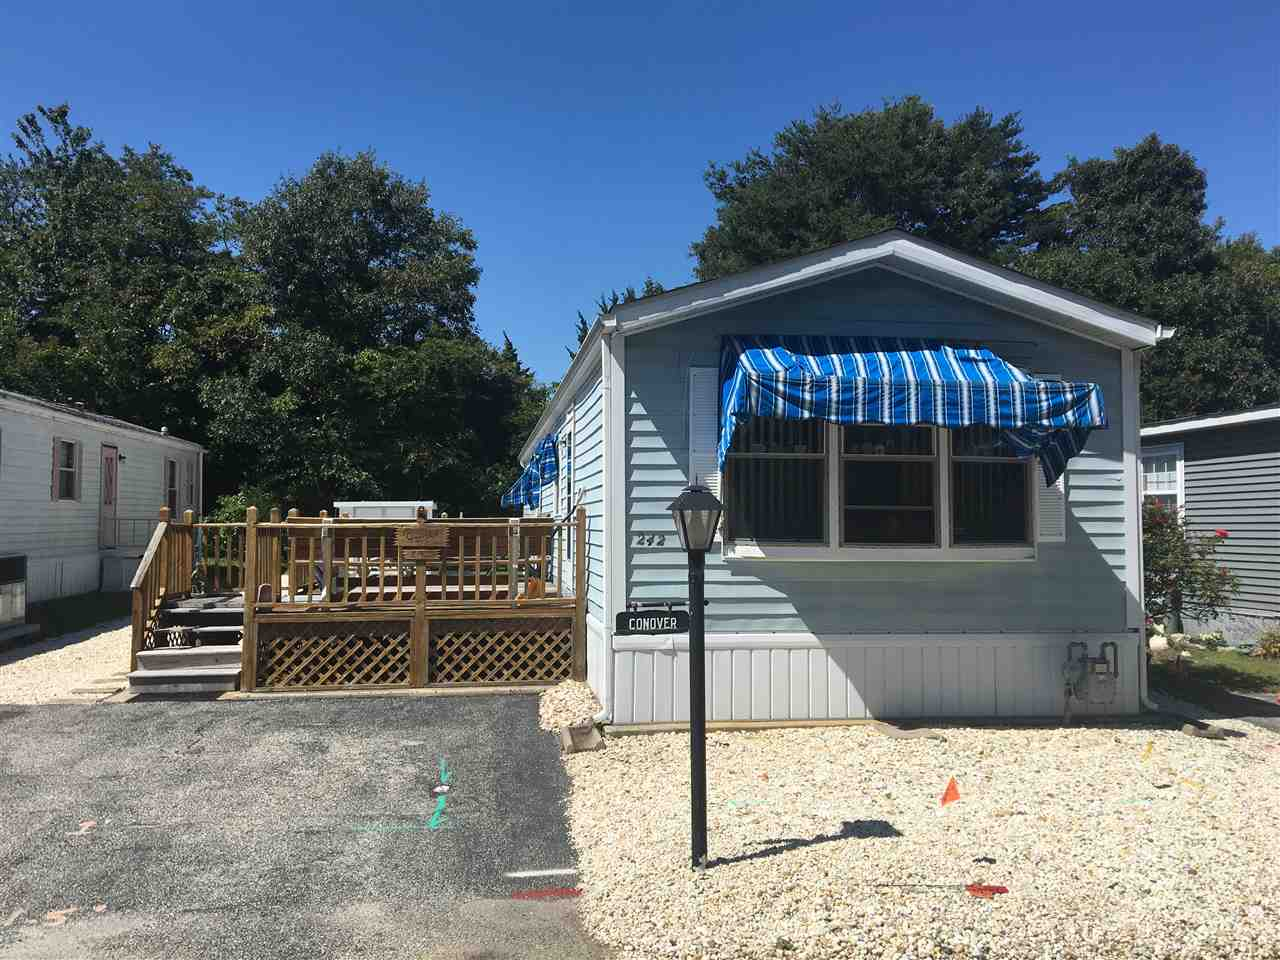 1402 S Route 9 lot 242  - Cape May Court House